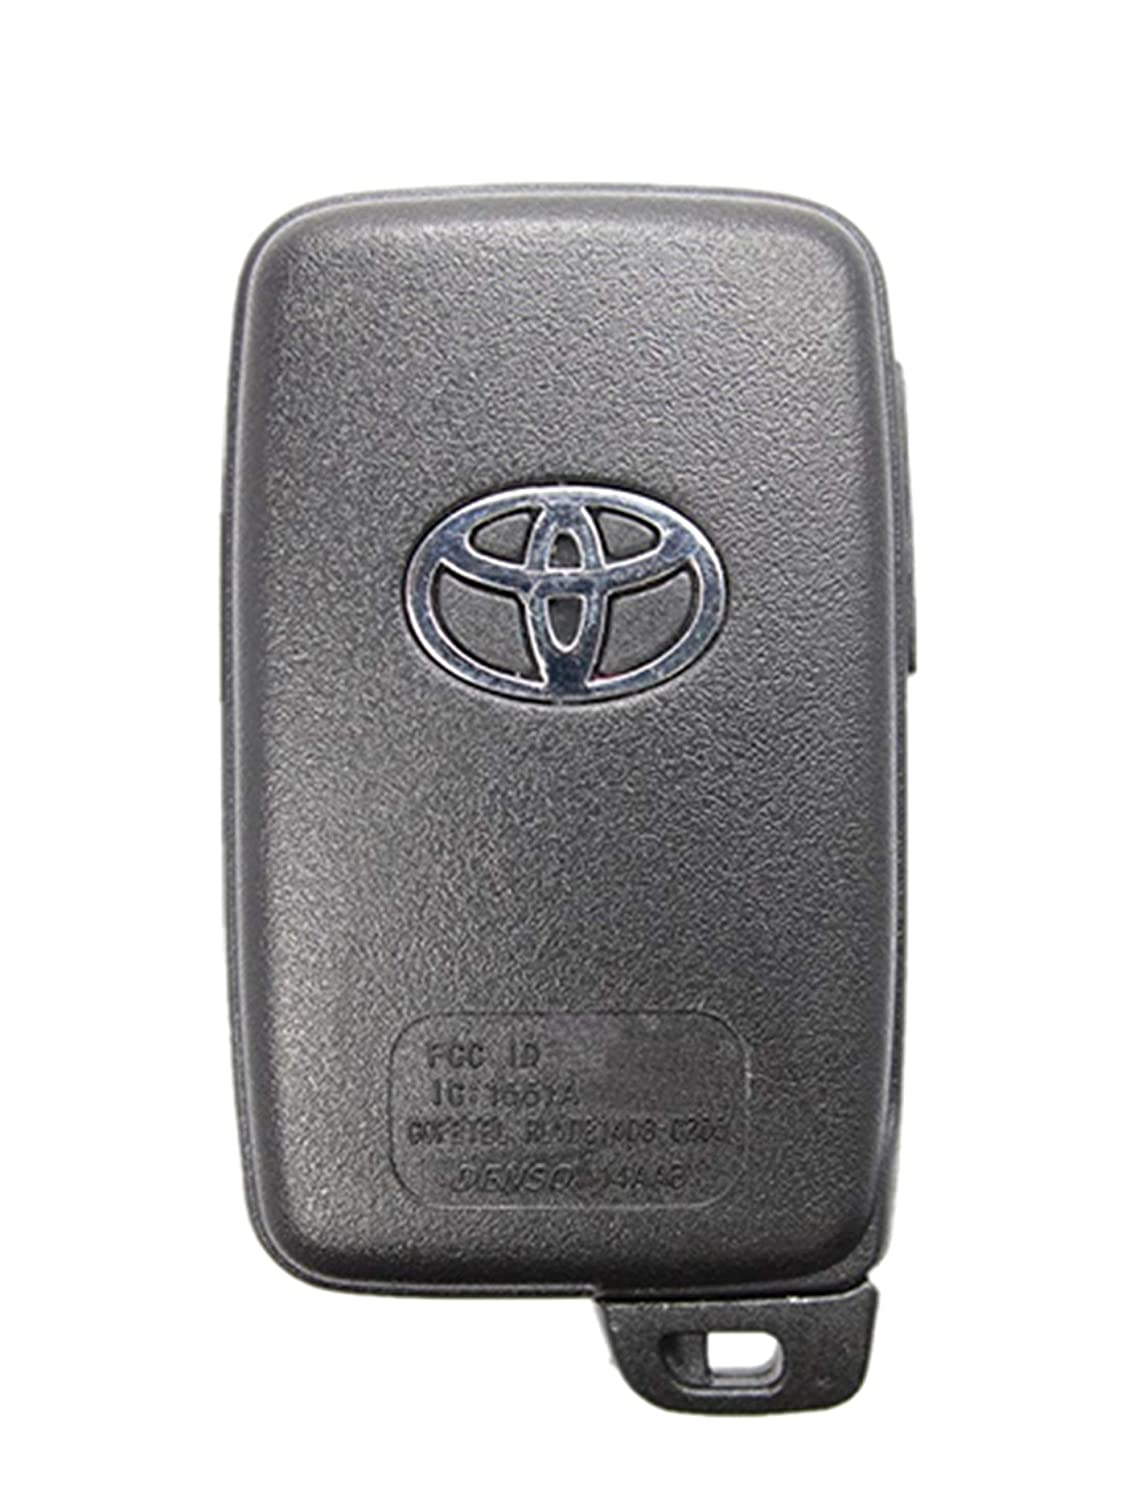 Just a Case KAWIHEN Keyless Entry Remote Key Fob Shell Case Replacement For Toyota Highlander Prius Prius C Prius V RAV4 HYQ14AAB HYQ12ACX HYQ14AEM